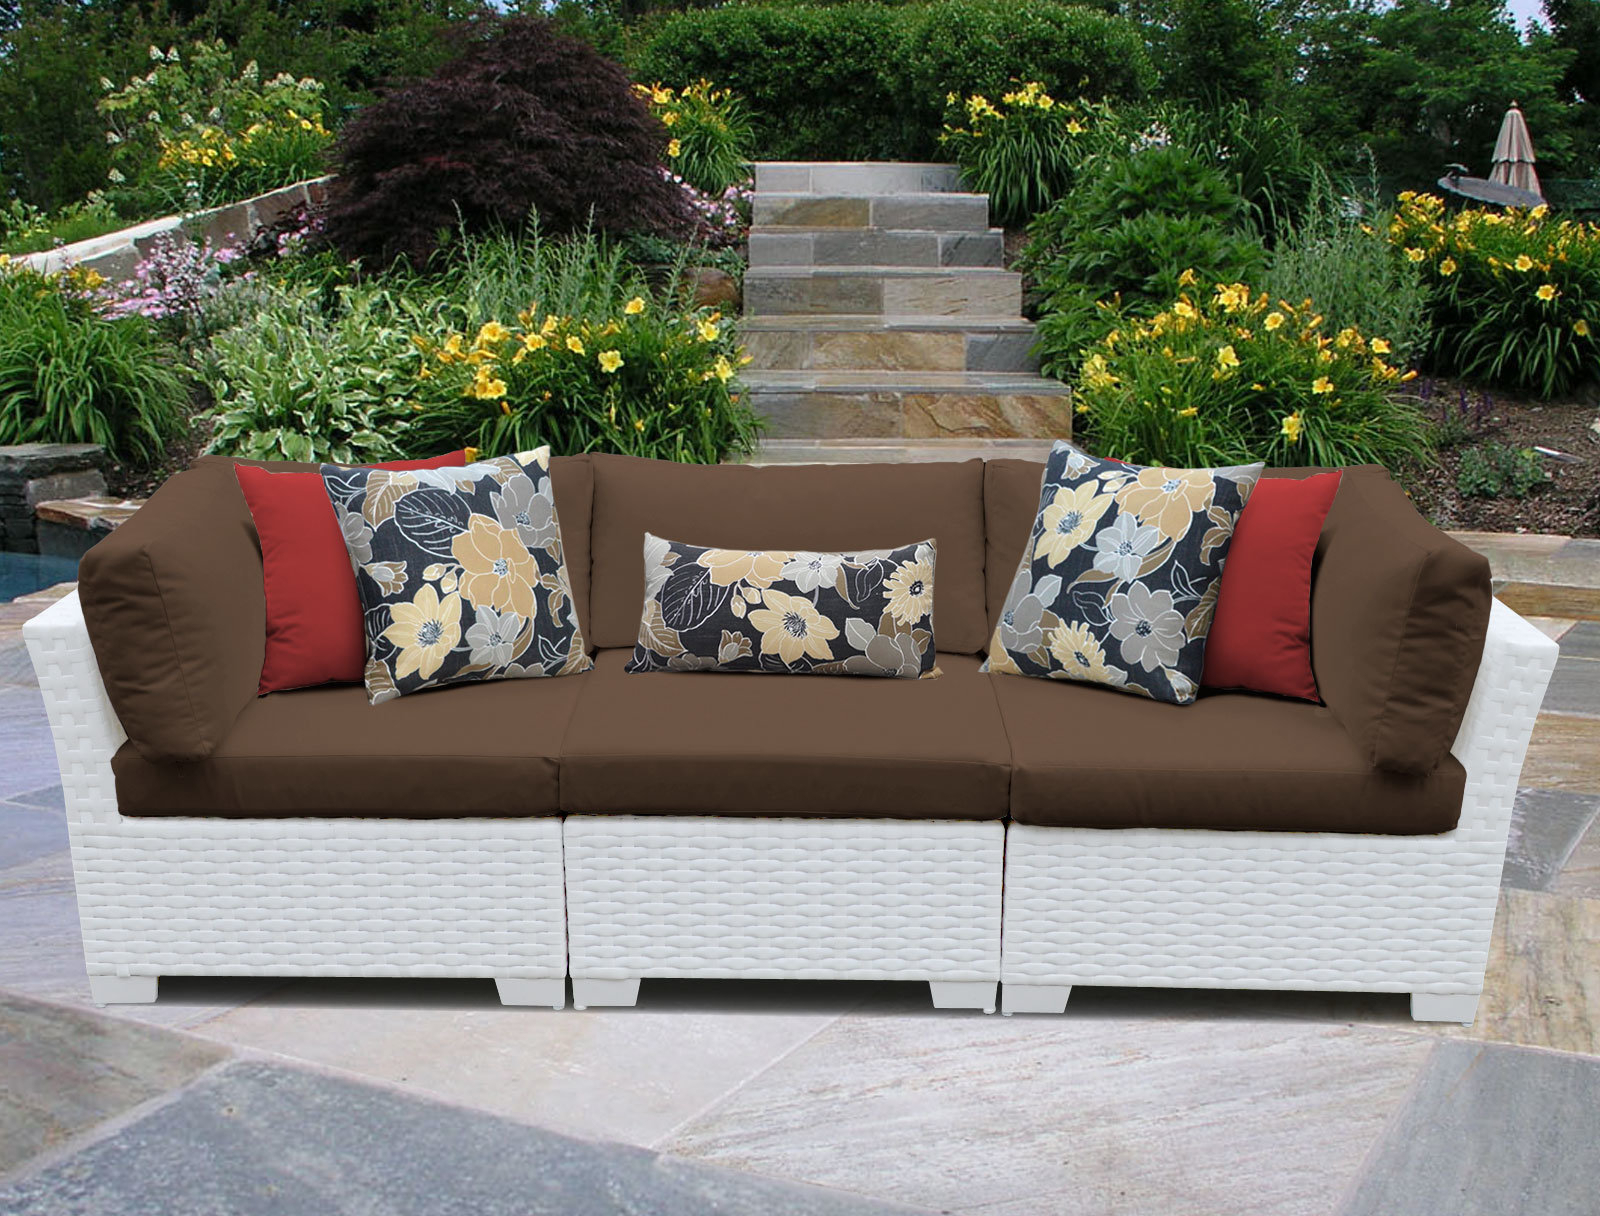 Loggins Patio Sofas With Cushions Throughout Most Recently Released Monaco Patio Sofa With Cushions (View 10 of 20)